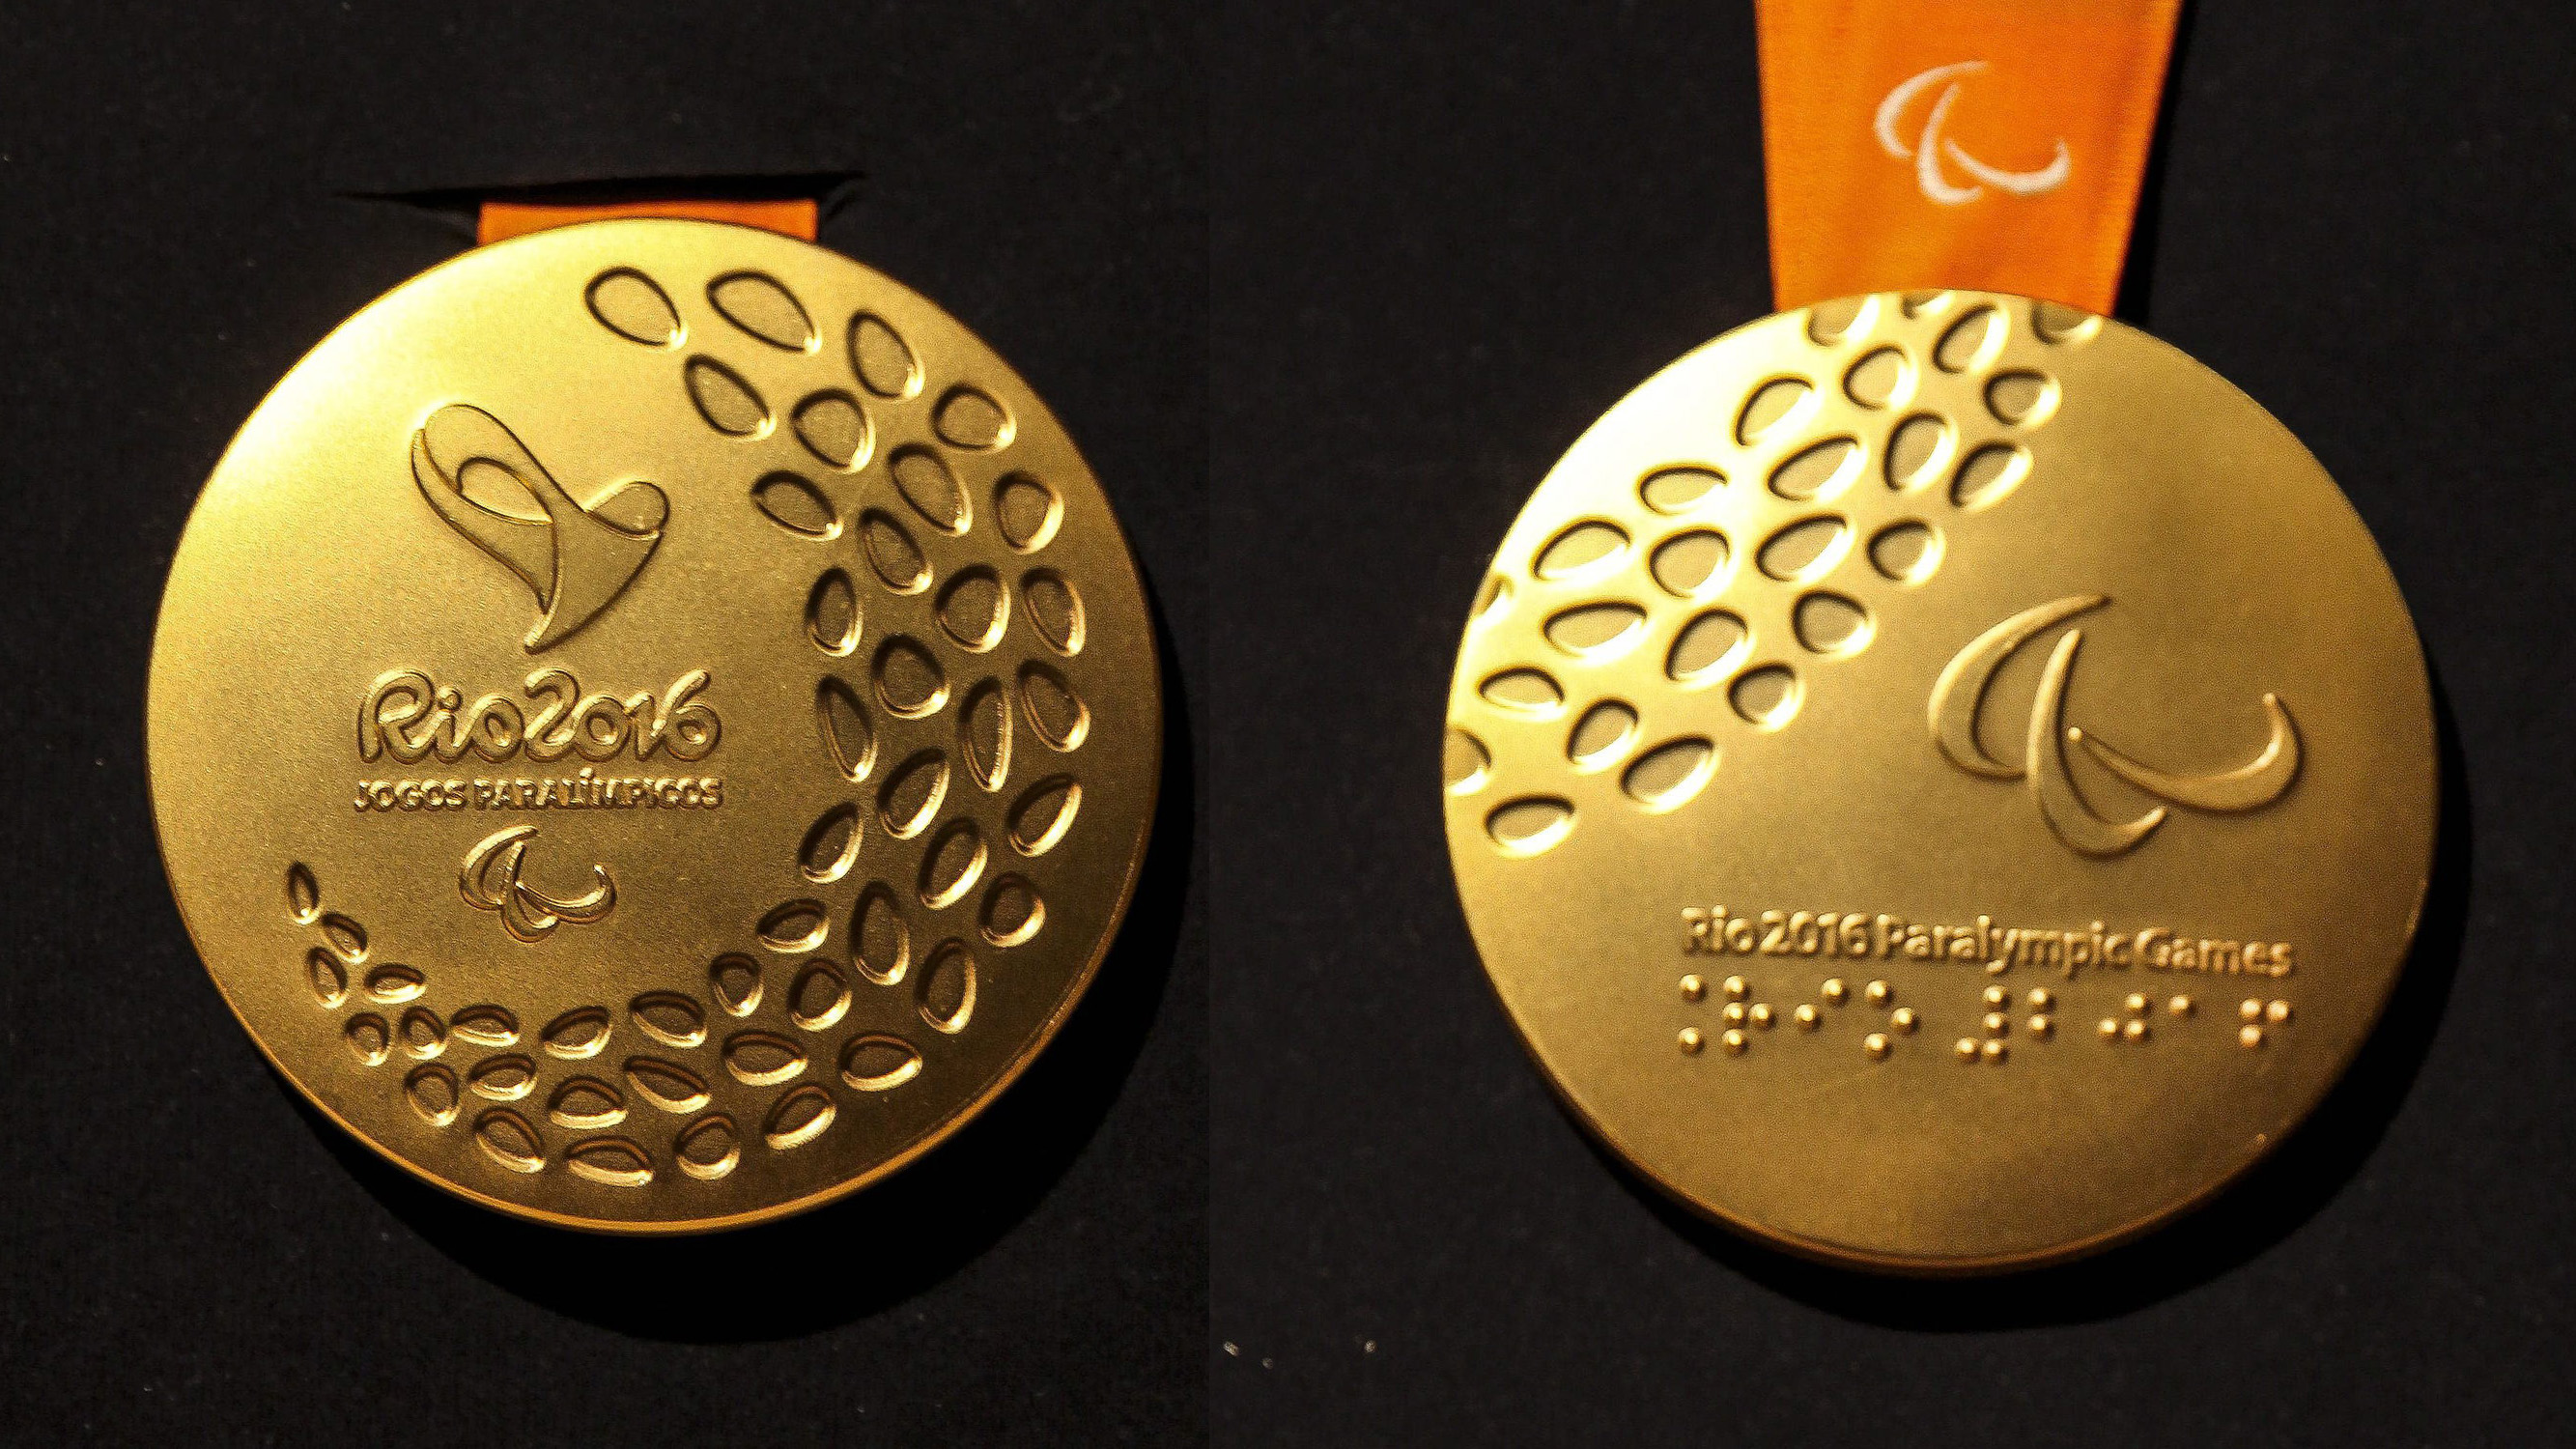 Goldmedaille der Paralympics 2016